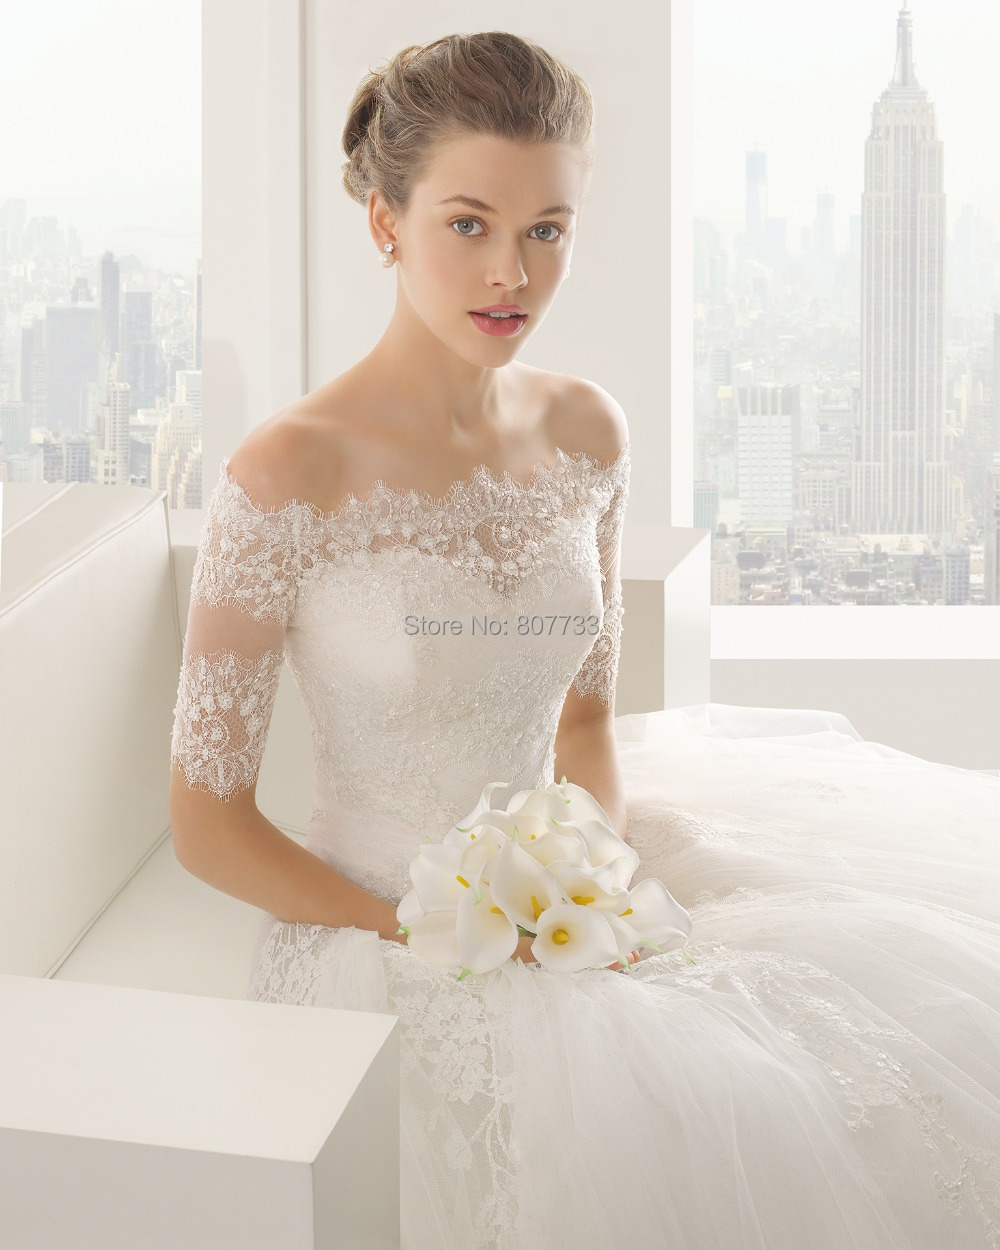 Aliexpresscom Buy CY4270 Off the Shoulder White Lace Ball Gown